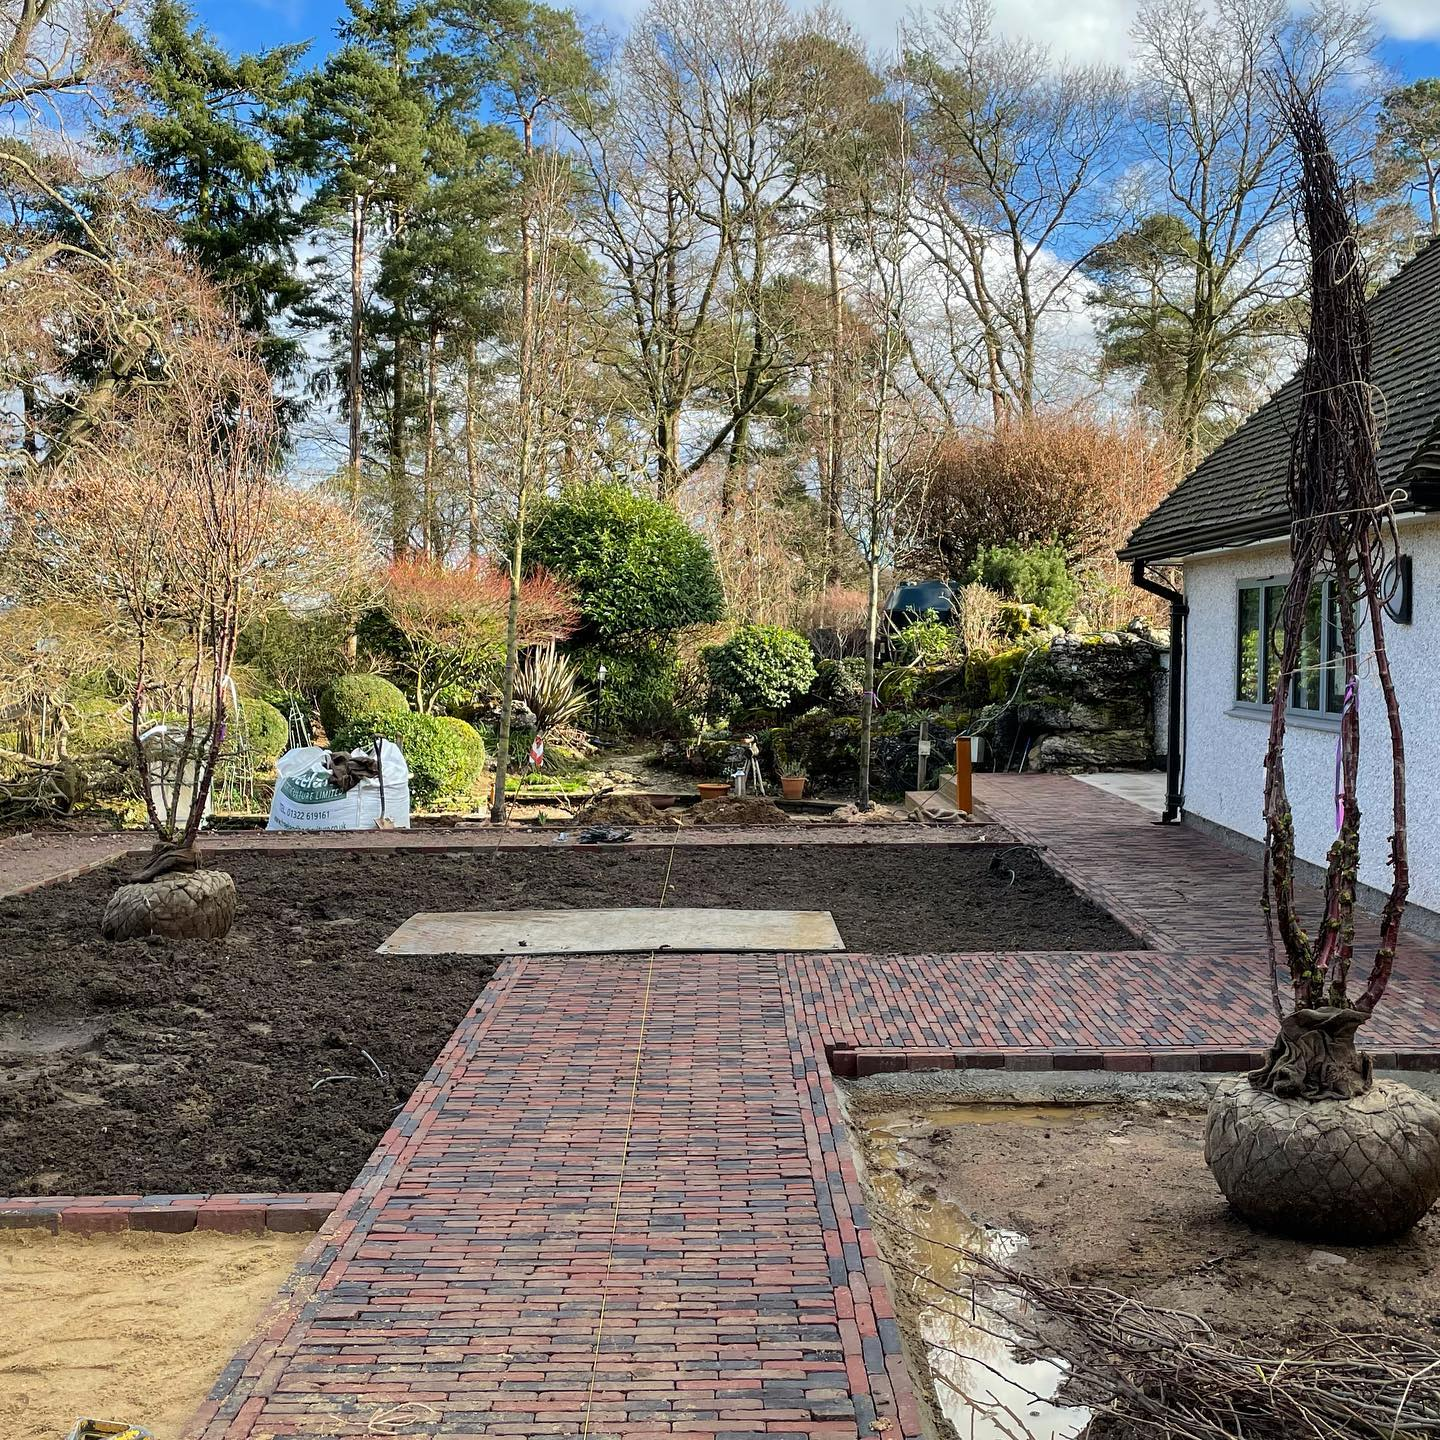 Tree planting today with @belderboslandscapes on a smart new front garden which is really taking shape. The path to the front door used to run alongside the house and by moving it away and creating an L-shaped journey to the front door our clients home really feels like it is starting to breathe. Trees from @deepdaletrees are Pyrus calleryana Chanticleer and Prunus serrula tibetica, their shiny burgundy stems chosen to compliment the colours of the @brickworksvandemoortel Ancienne Belgique copper brown clay pavers. The structural planting is going to be the star on this one though!